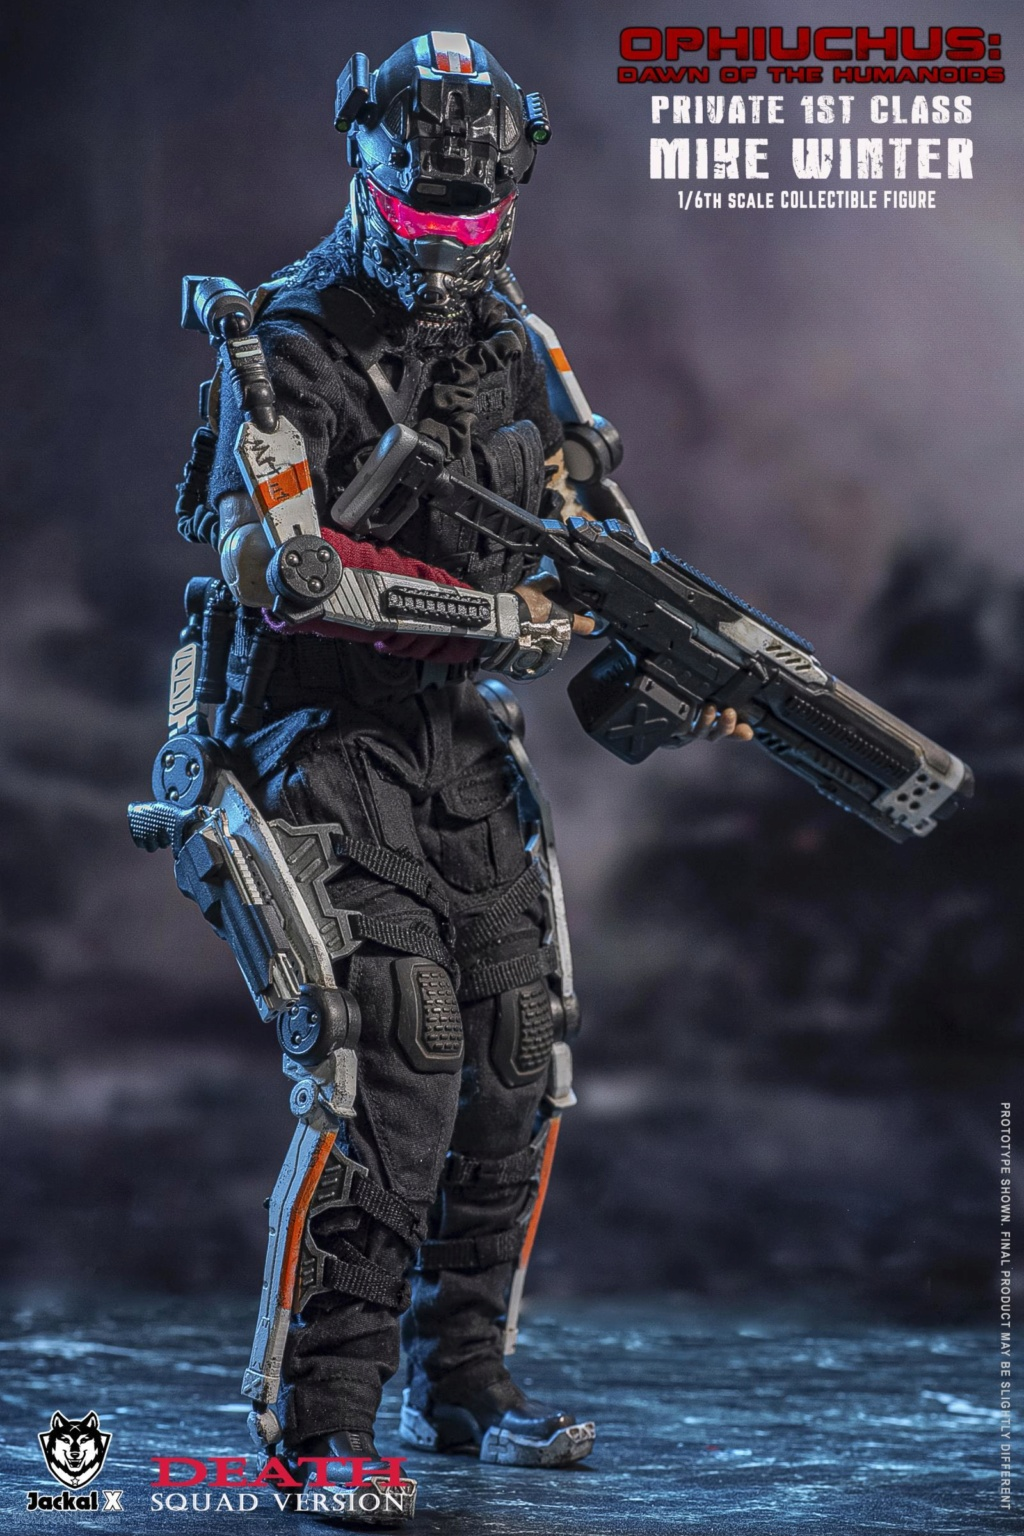 DawnOfHumanoid - NEW PRODUCT: JackalX: 1/6 Ophiuchus: Dawn of Humanoid: Private 1st Class Mike Winter Collectible Figure (2 Versions) 43202035